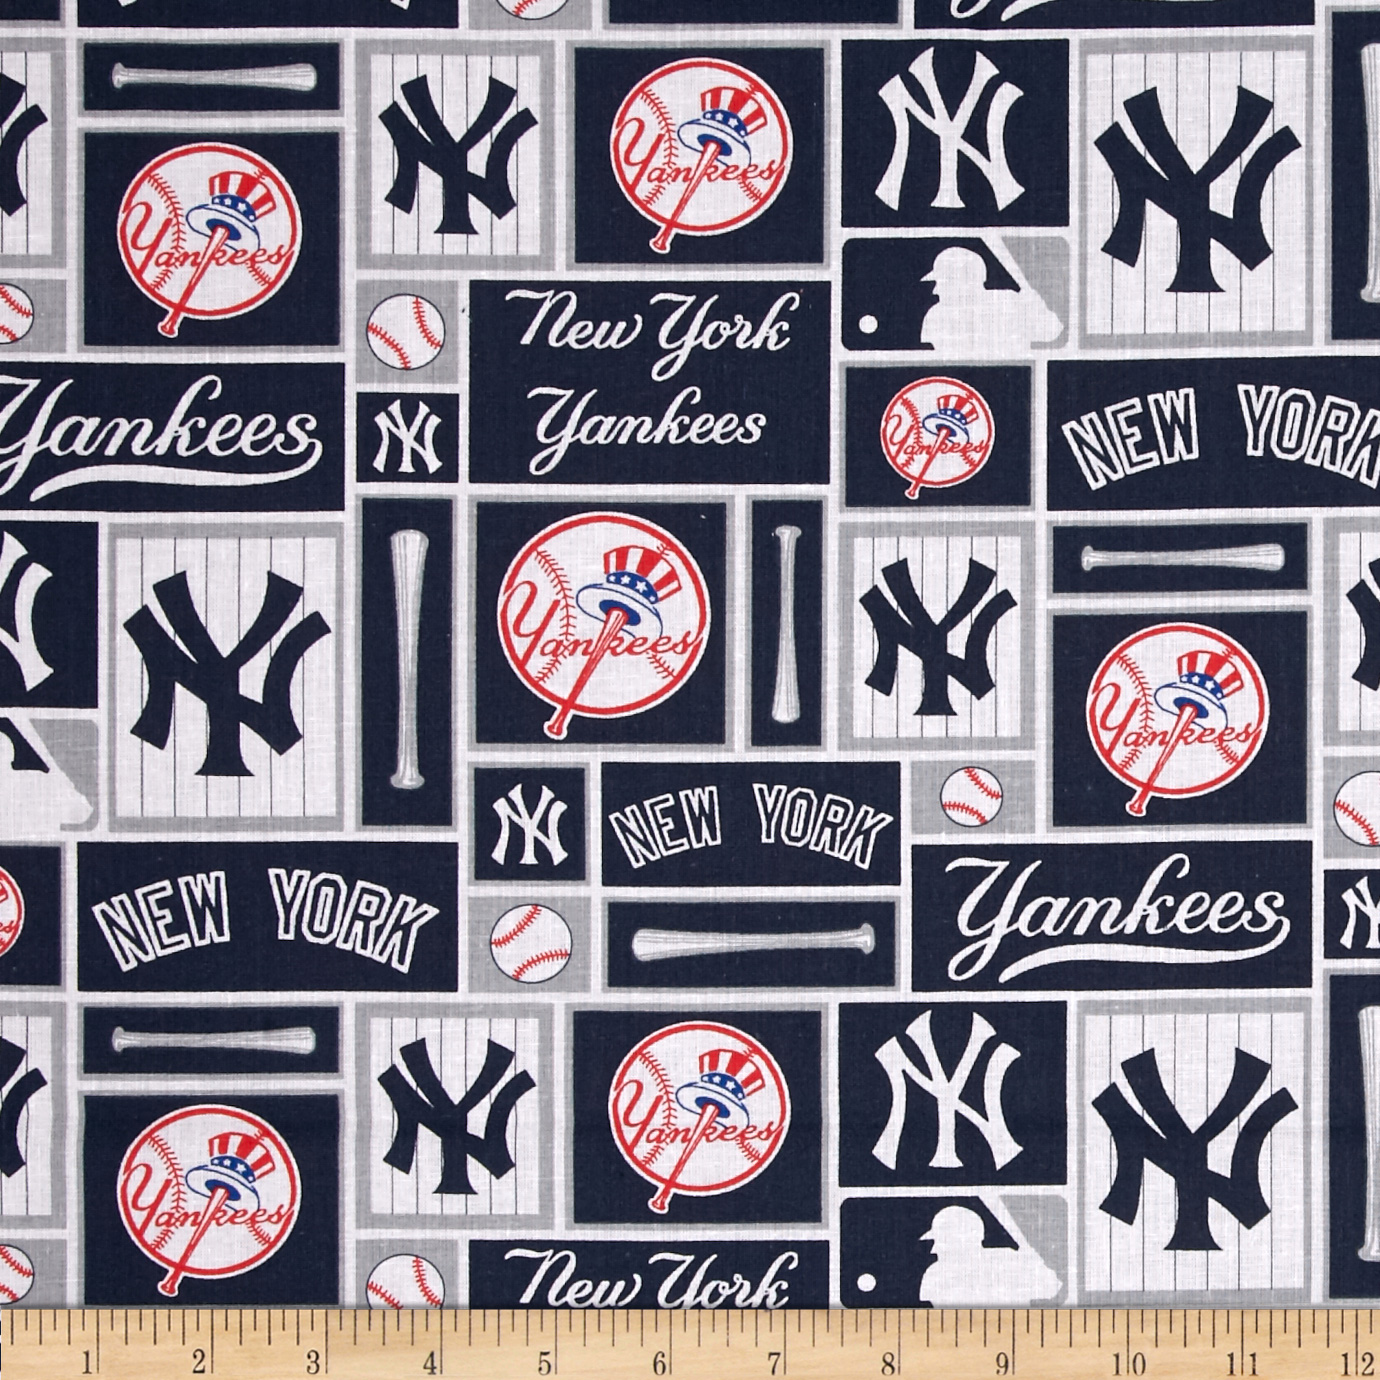 MLB Cotton Broadcloth New York Yankees Blue/White Fabric by Fabric Traditions in USA